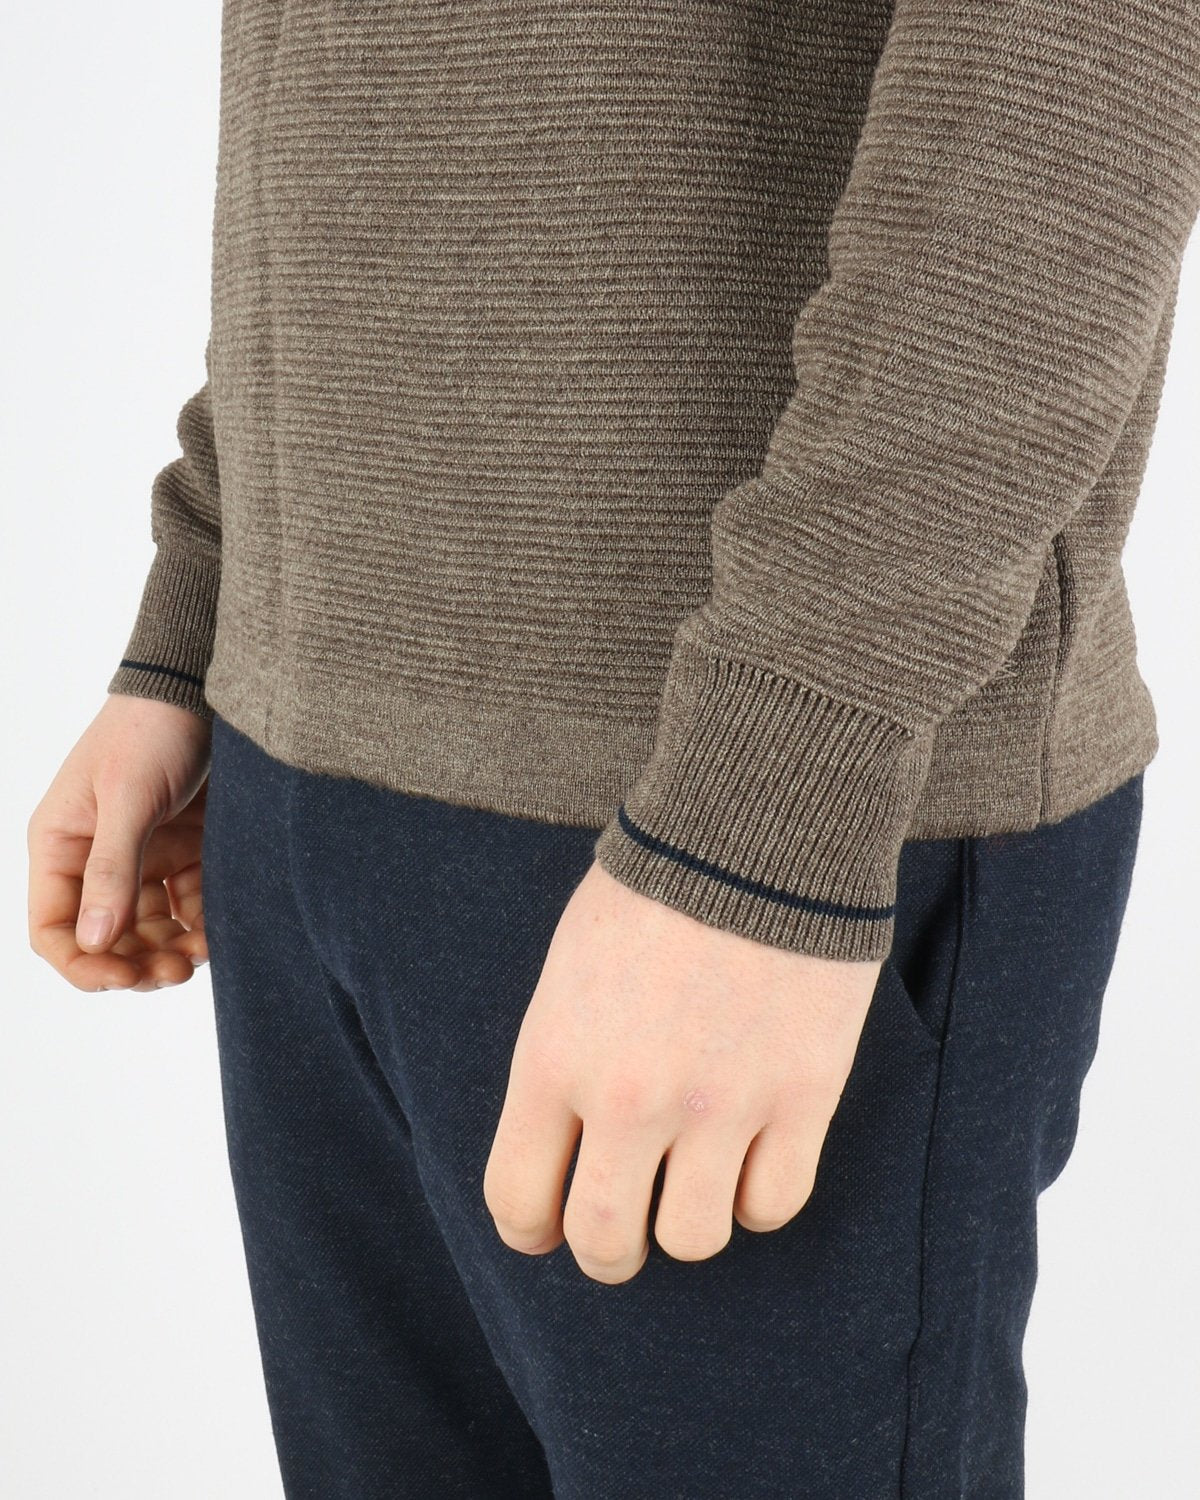 woodbird_craving otto turtle knit_forrest_4_4